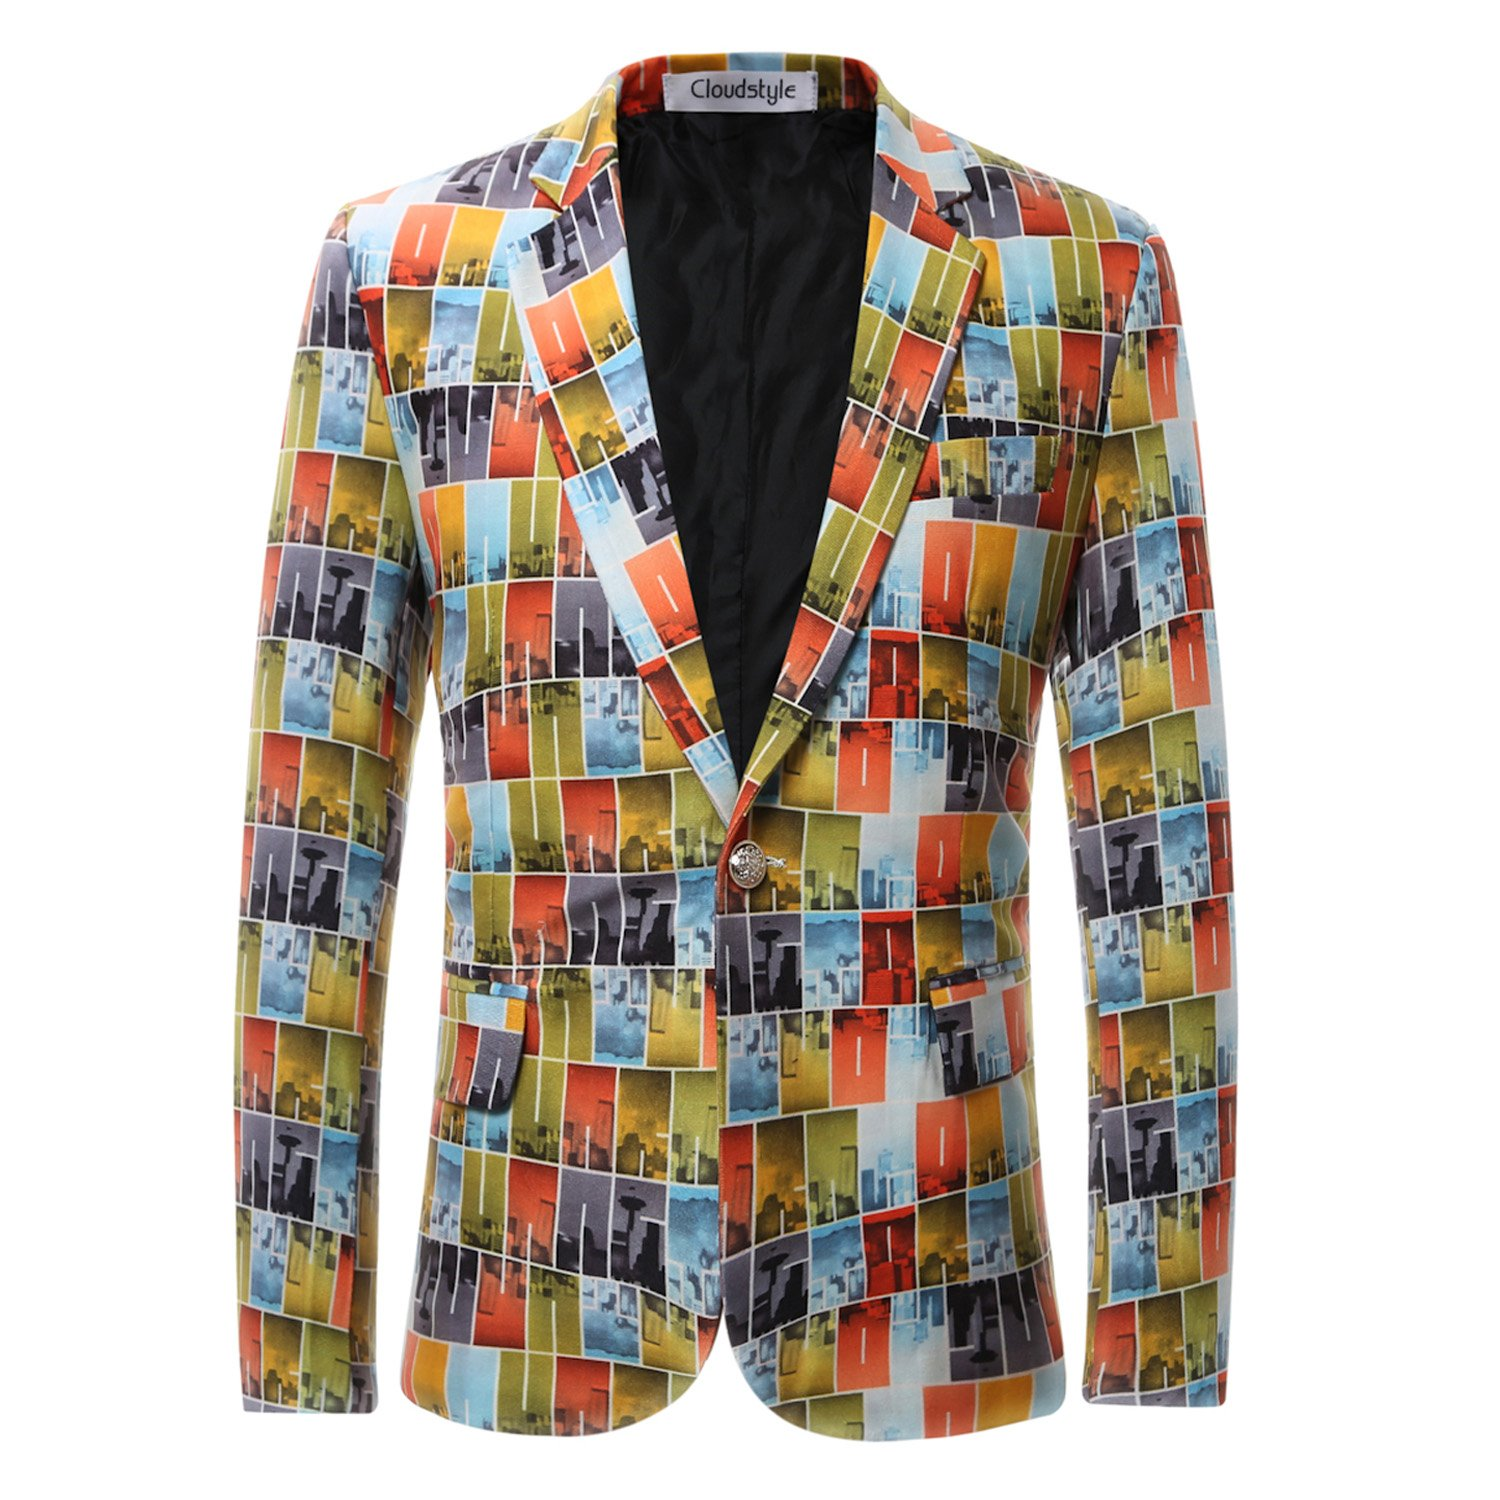 Cloudstyle Mens Funky Printed Blazer One Button Fitted Jacket Party Wear HKXK